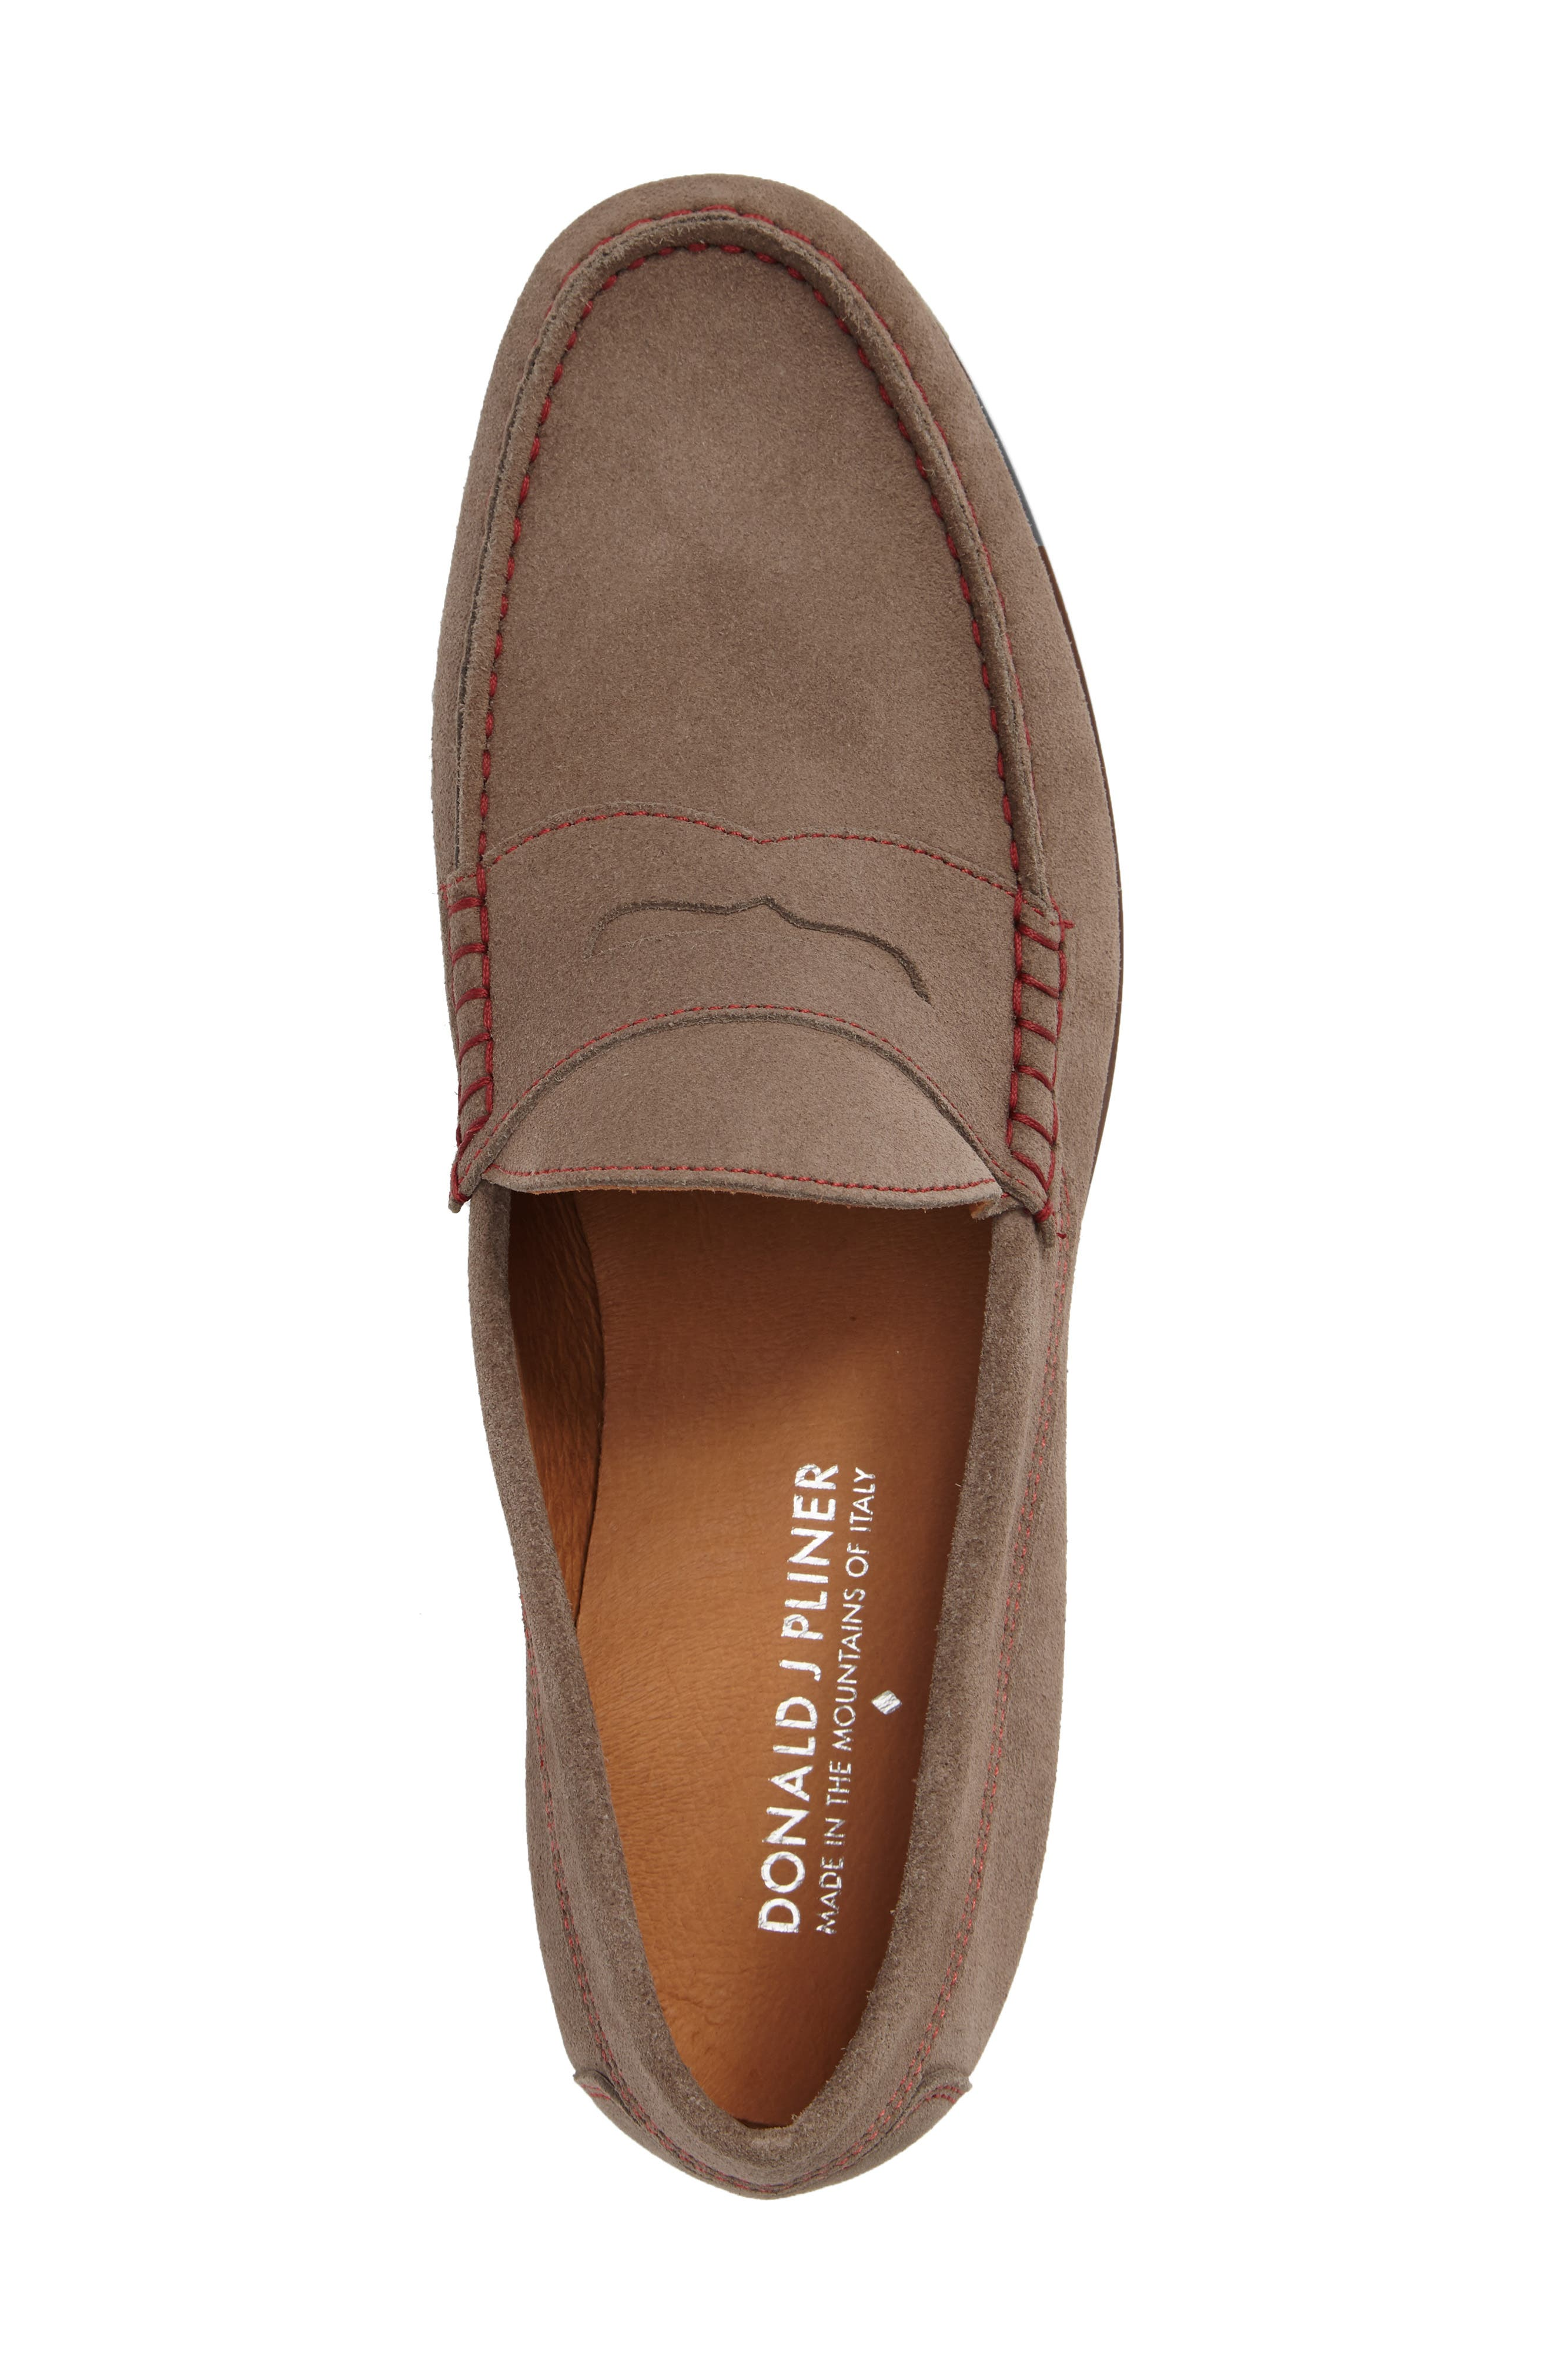 Nicola Penny Loafer,                             Alternate thumbnail 28, color,